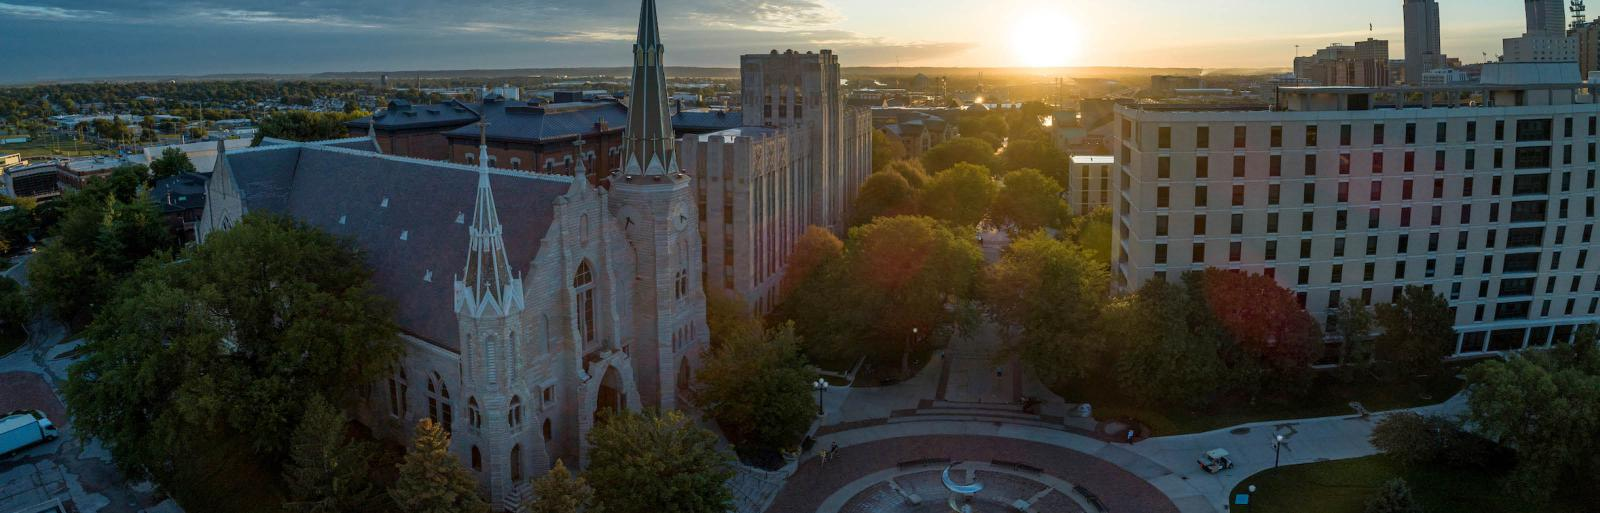 Creighton campus at sunrise